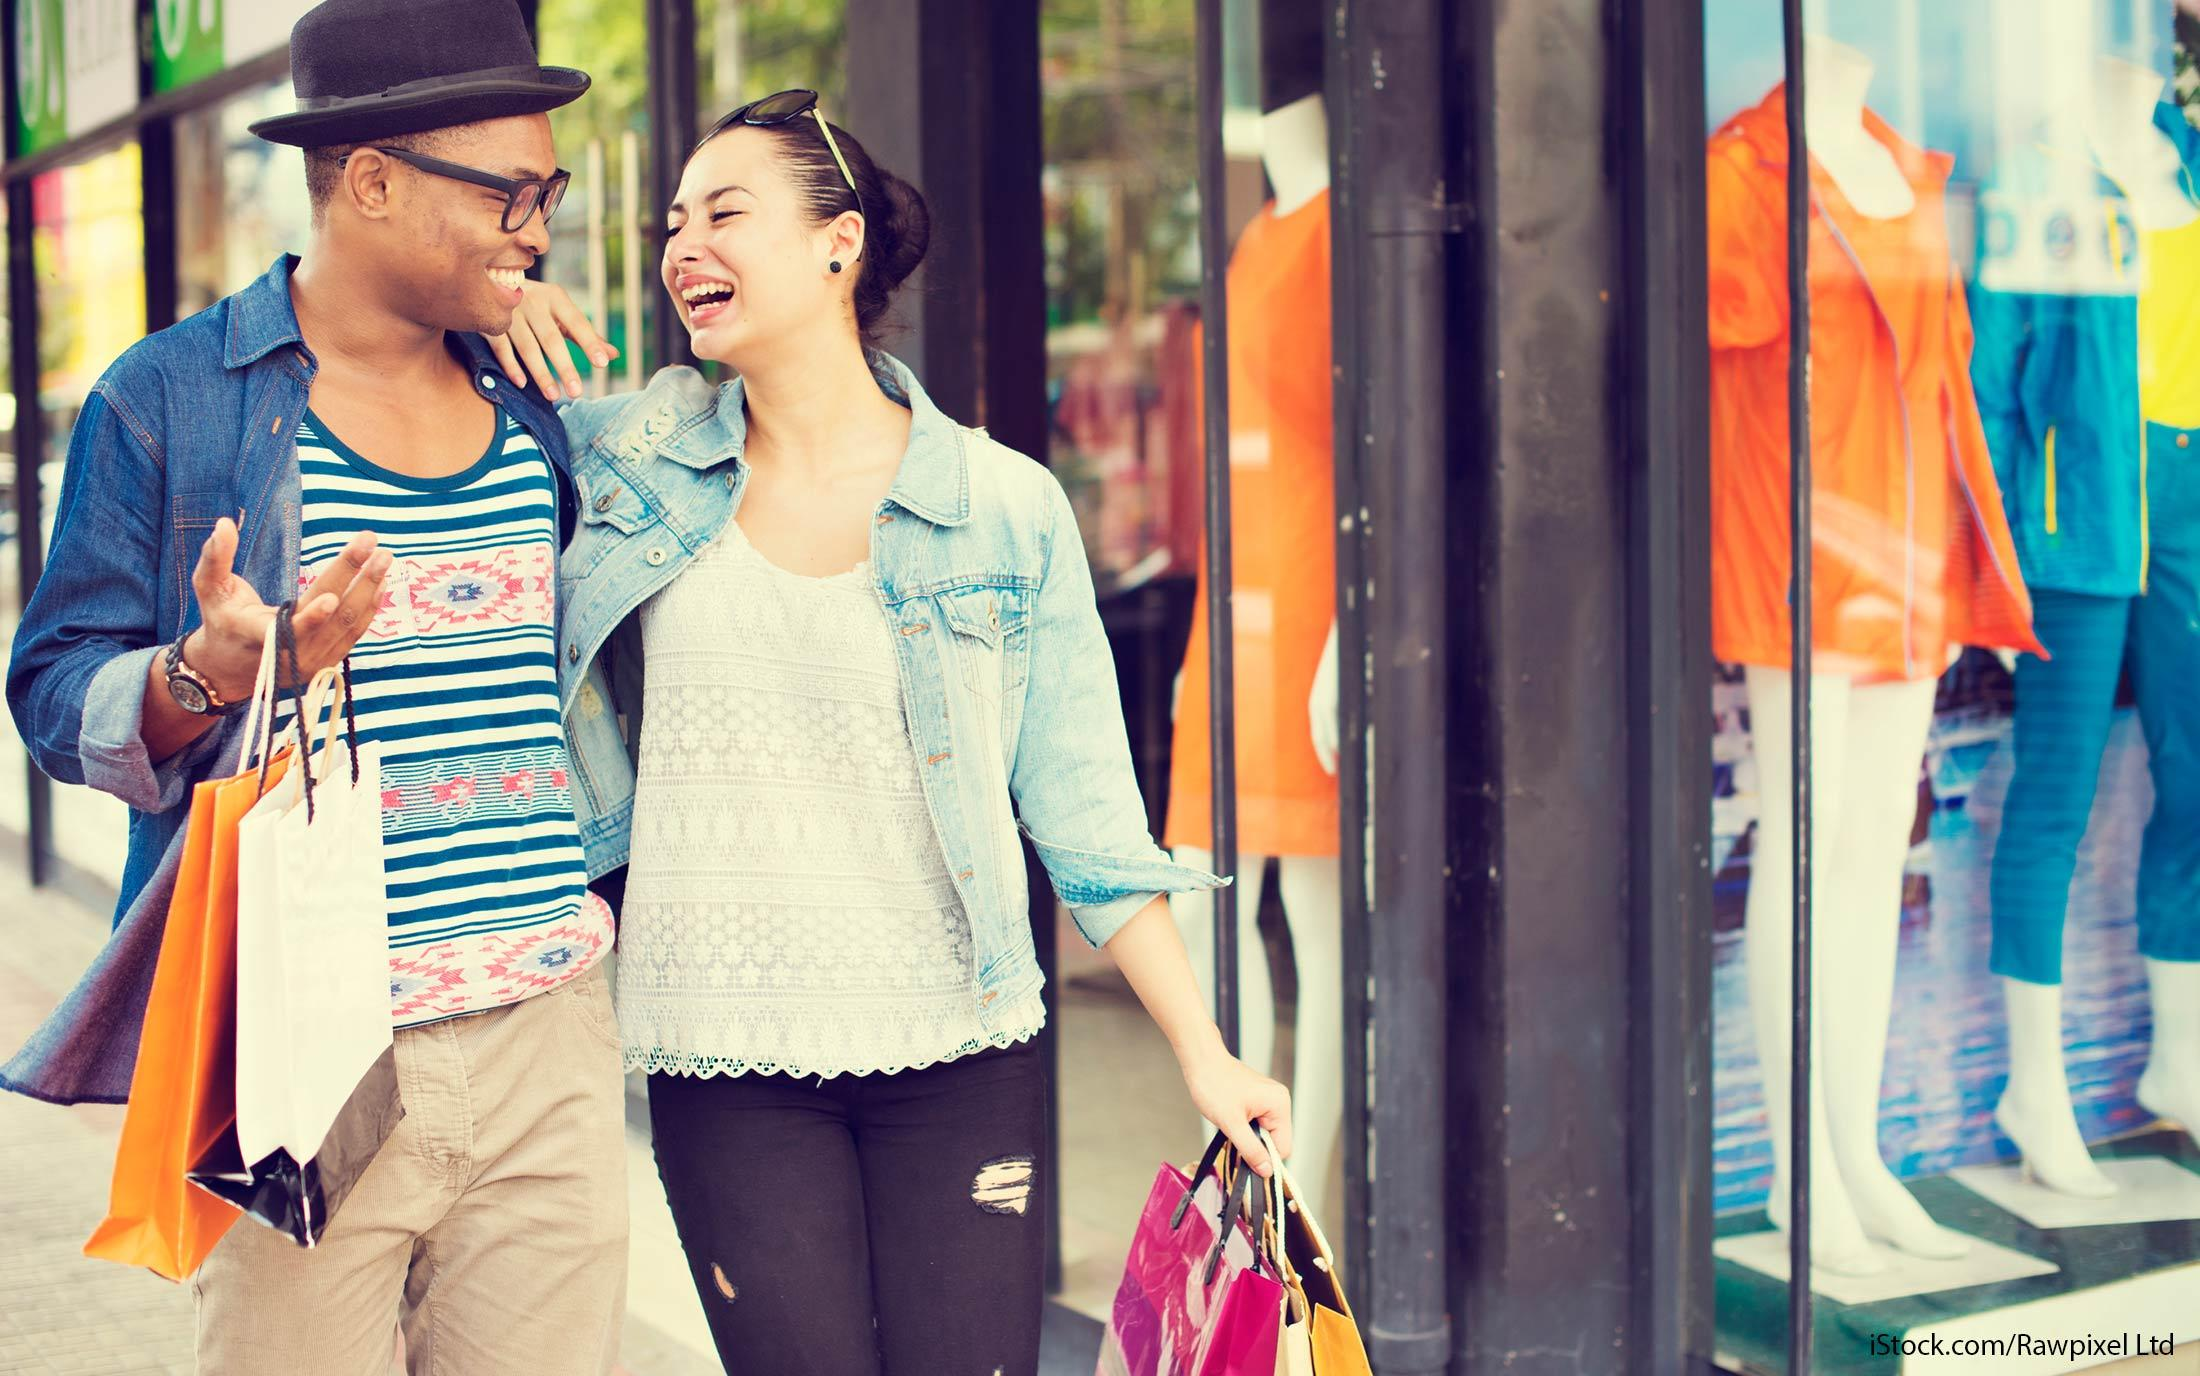 spending triggers leave poor shopping addiction